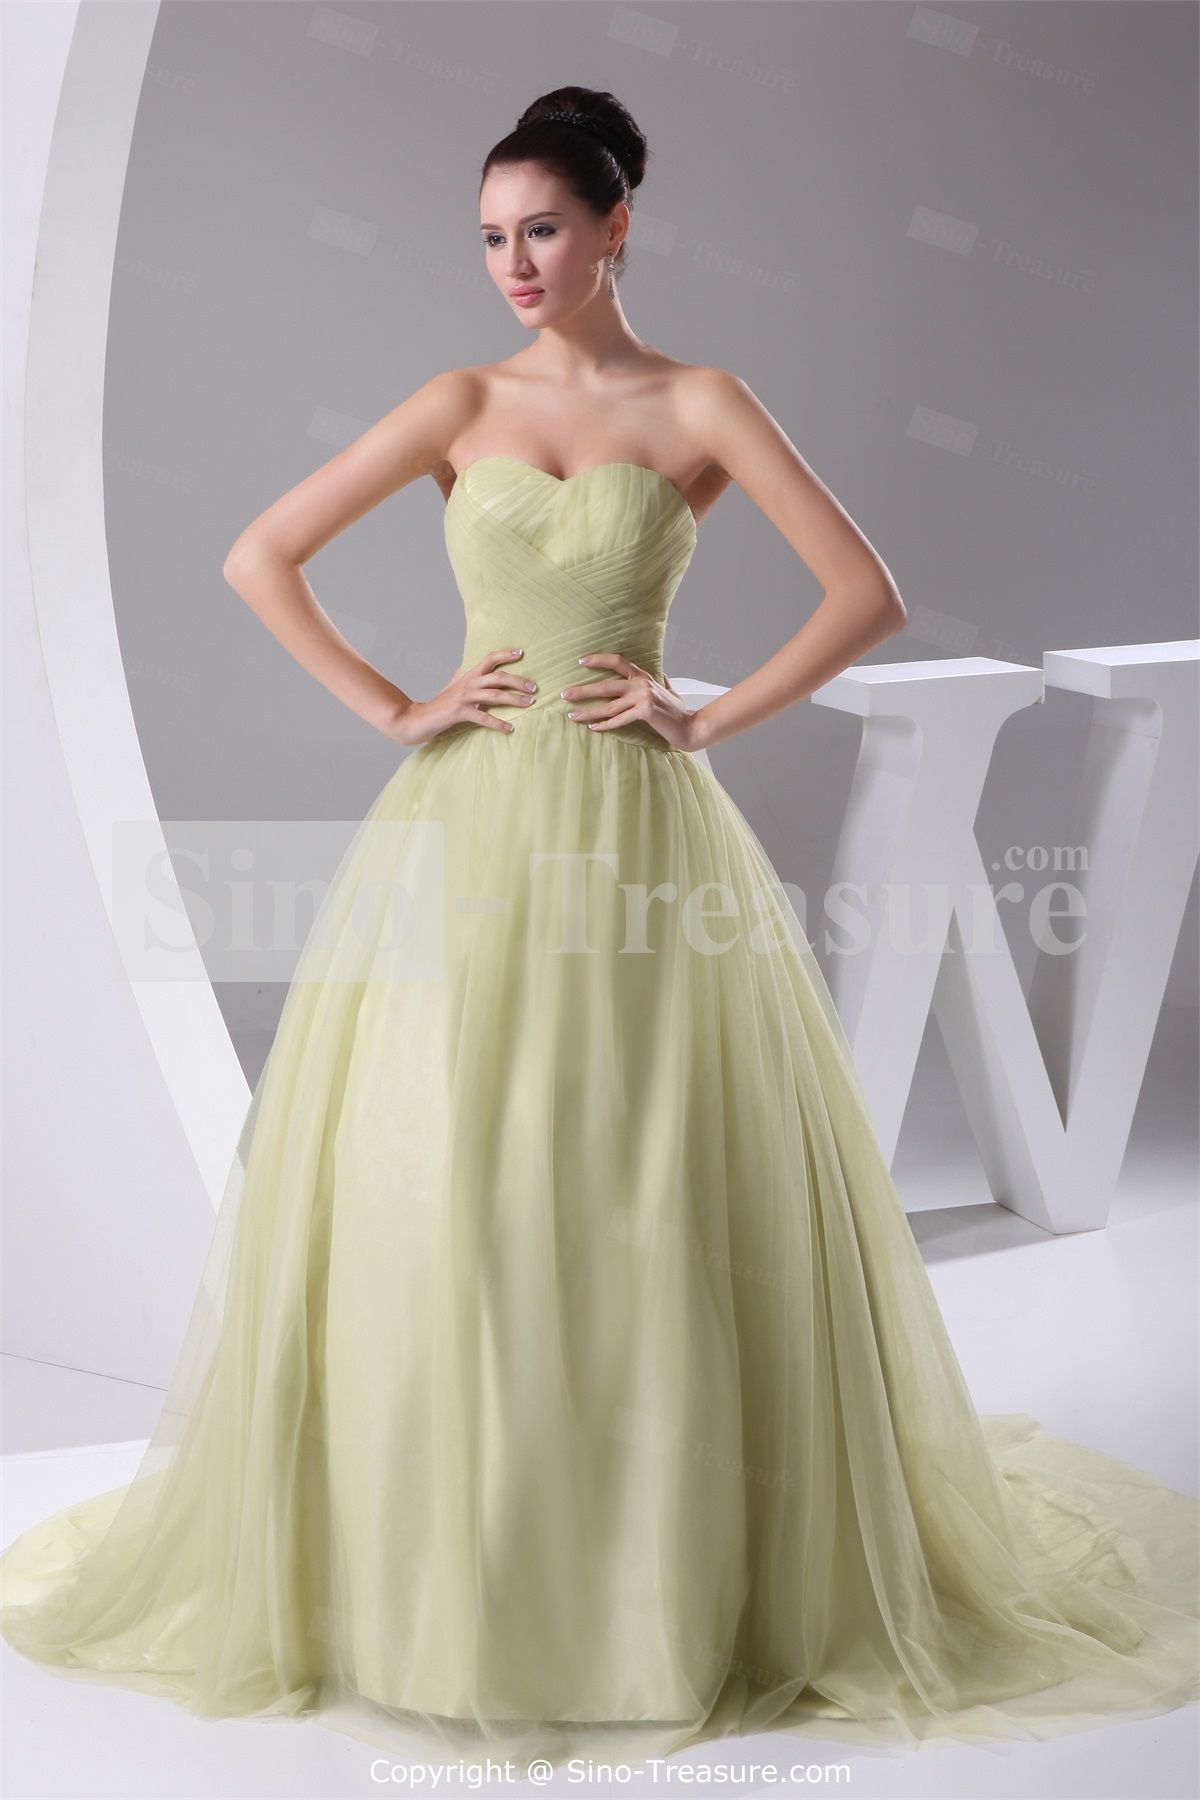 Colored wedding dresses color wedding dress wedding princess ball gown with sweetheart neckline wedding dress really pretty and unique celery color ombrellifo Image collections